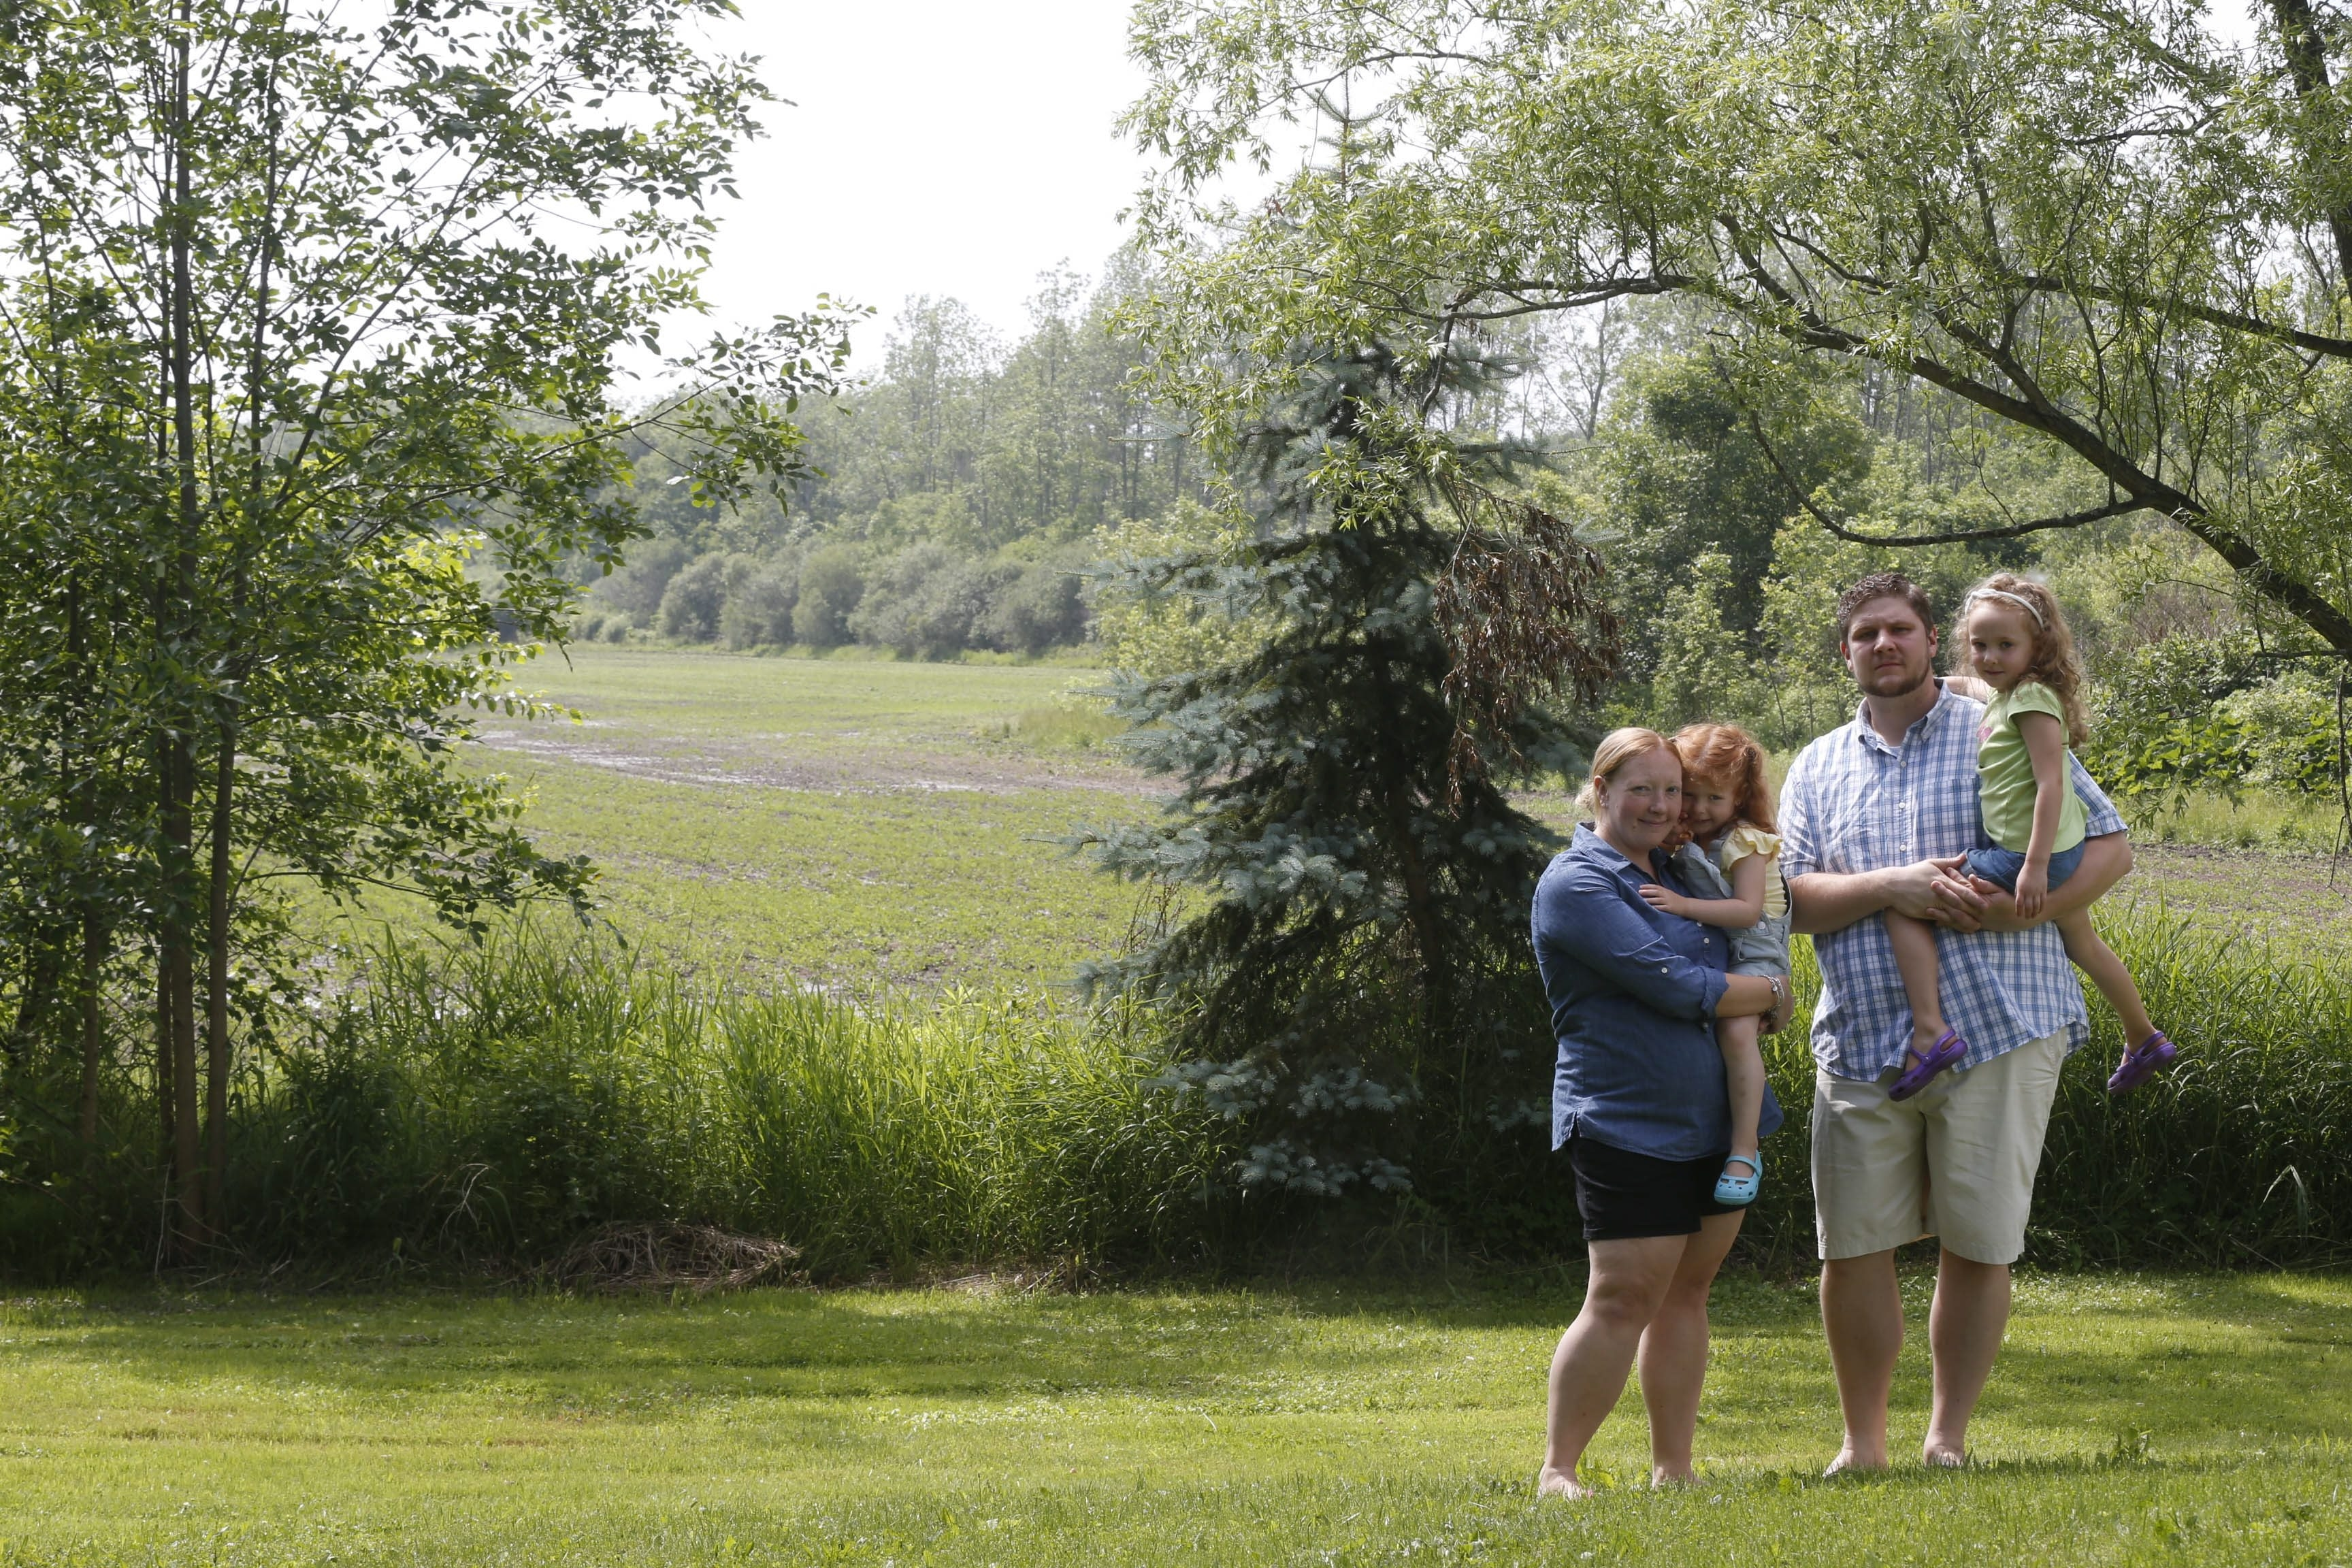 Kelly and Mike Monde with children, Emily, 3, left, and Julia, 4, in the backyard of the Beach Ridge Road home they purchased last summer. The Mondes are alarmed by a plan to build a natural gas compressor behind the house.